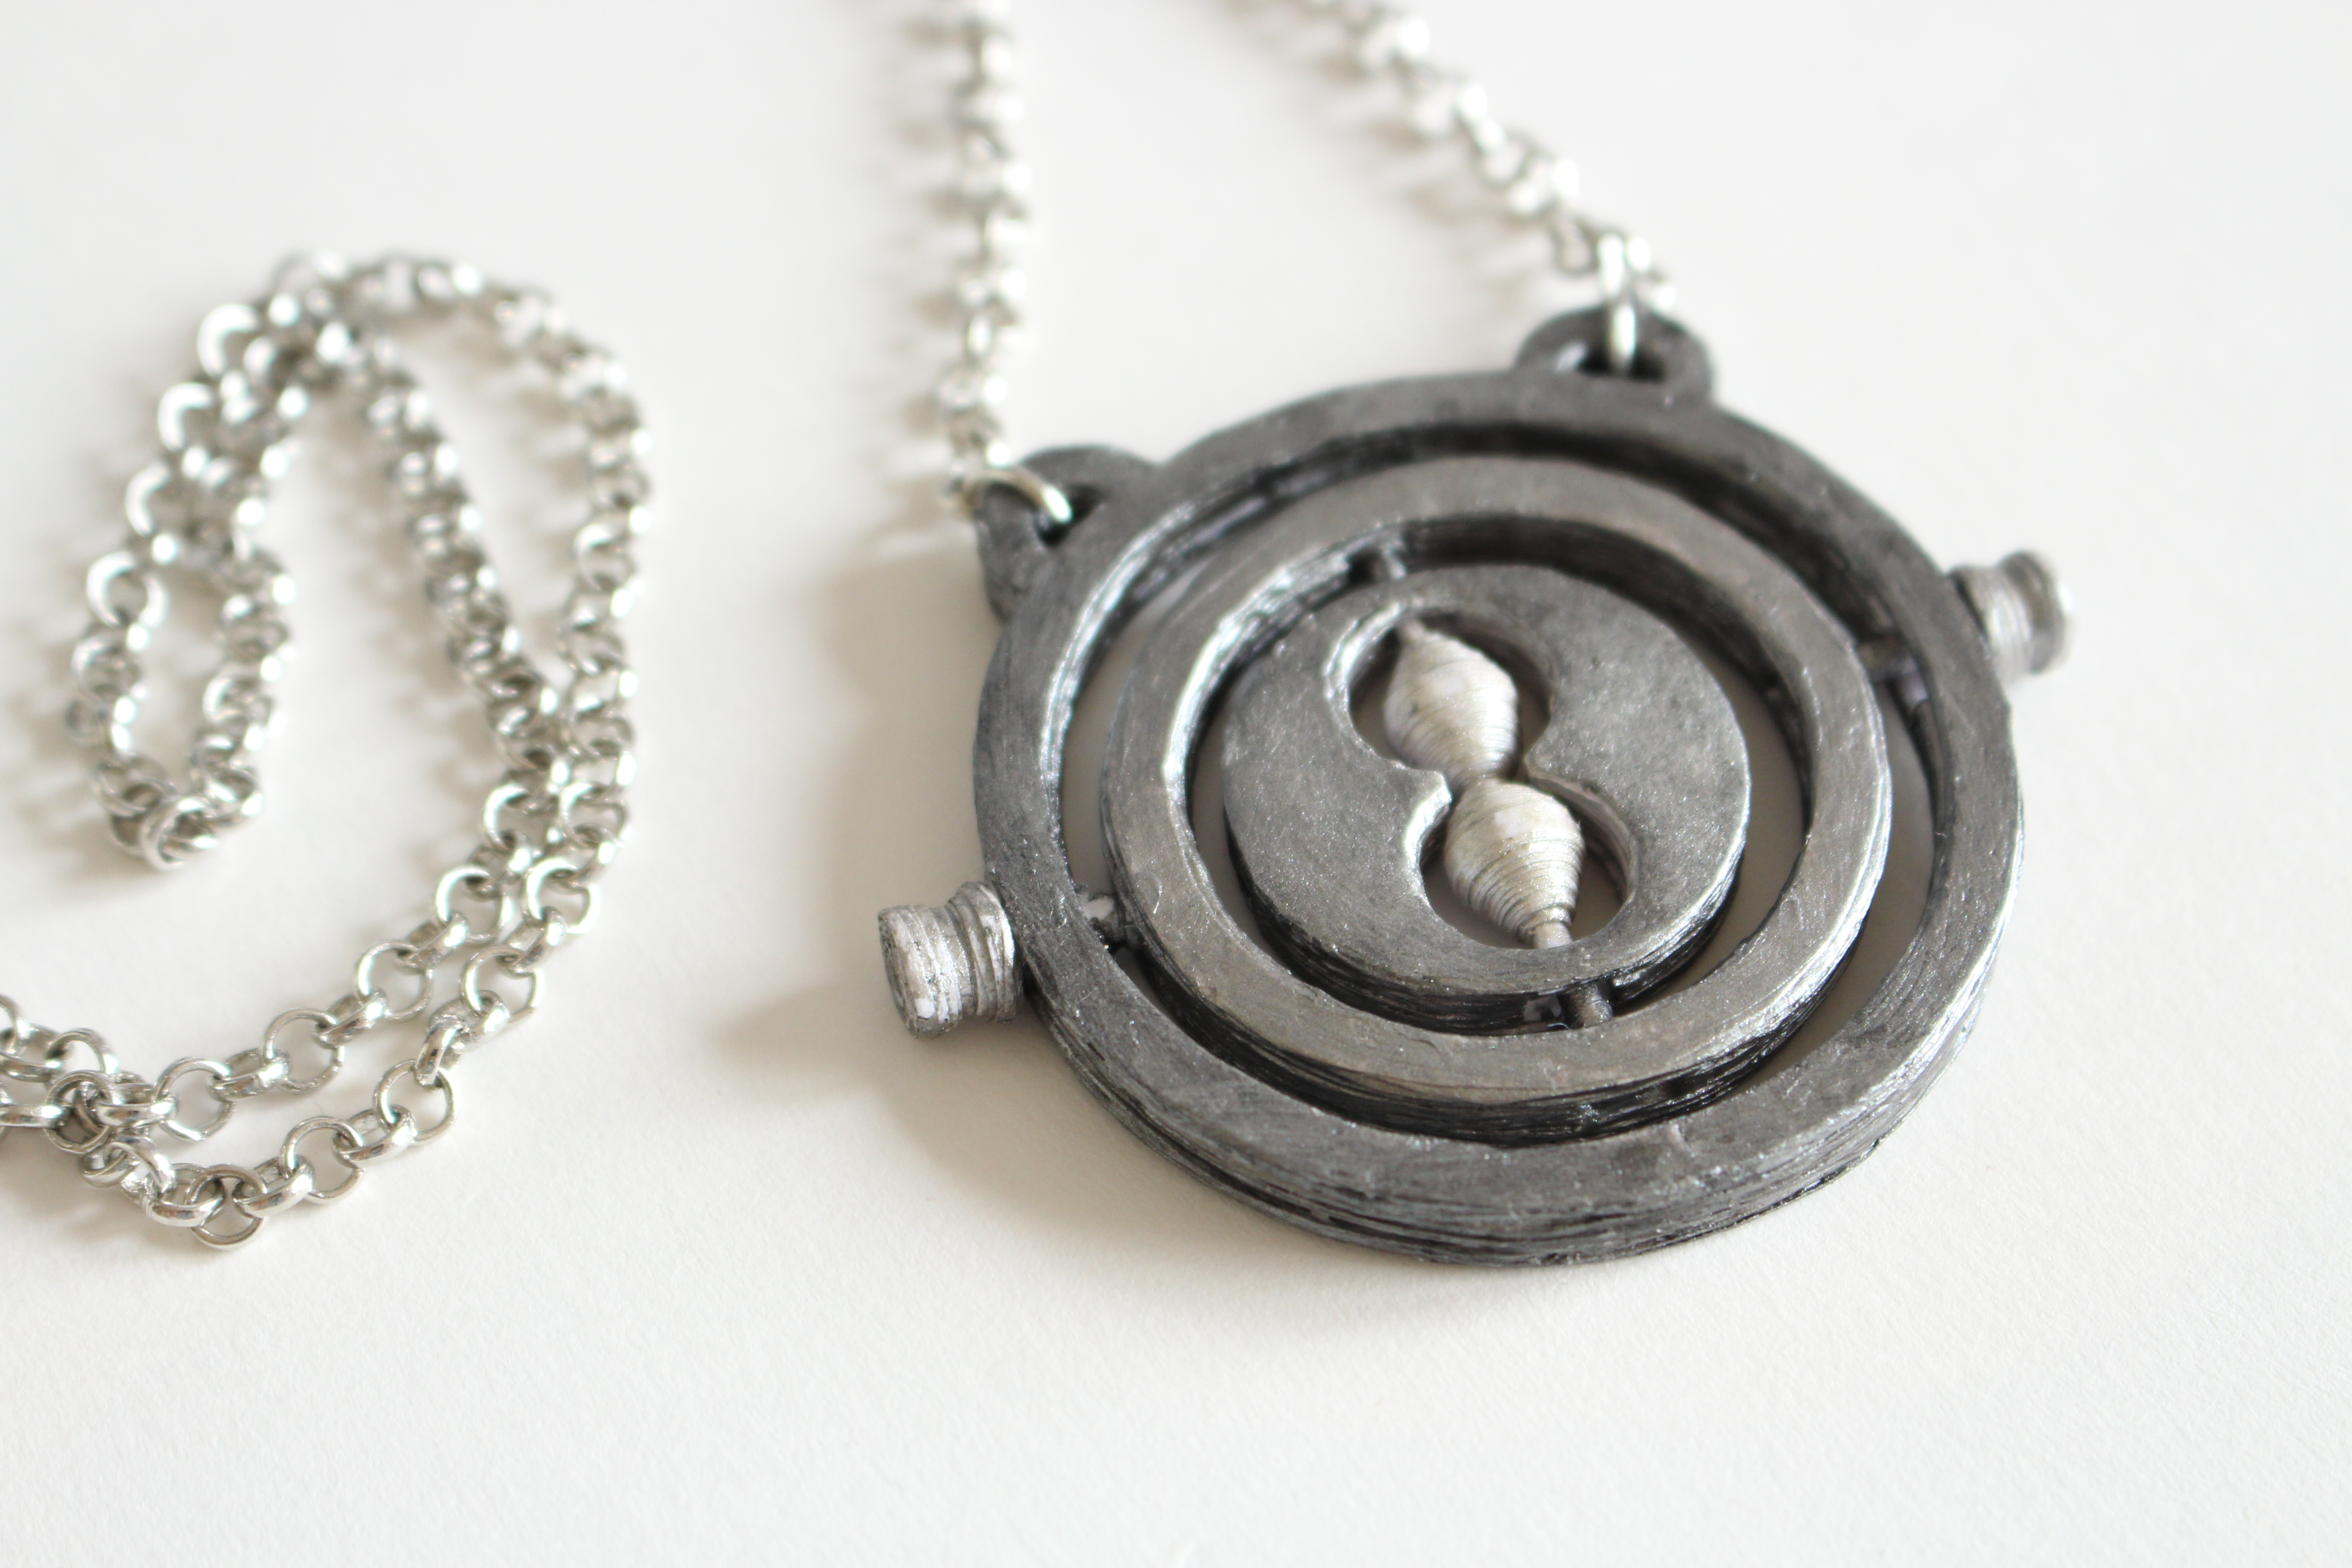 Picture of The Finished Pendant